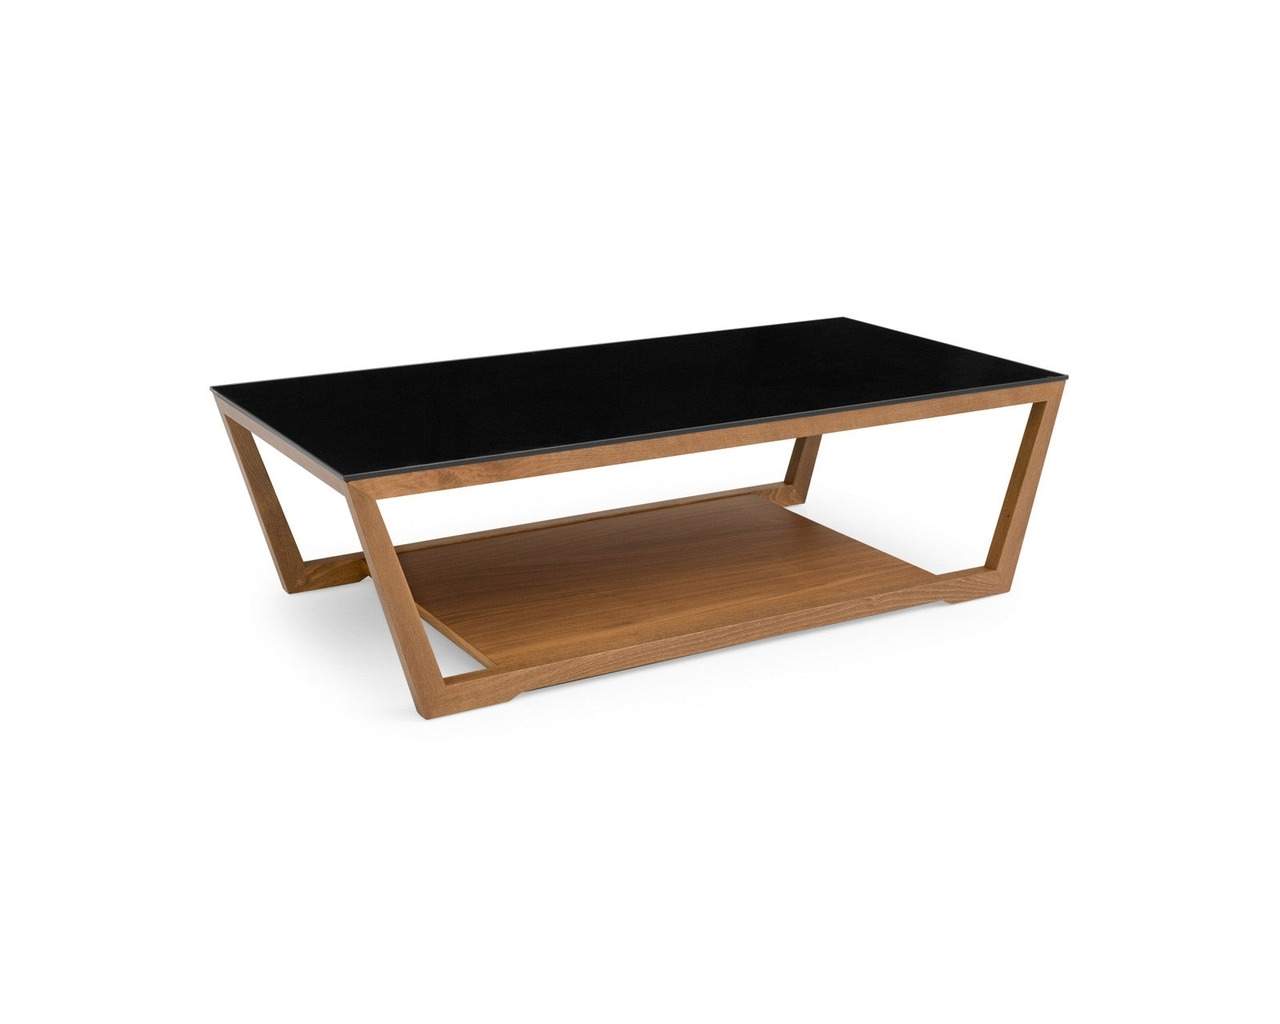 Calligaris Element Coffee Table - Coffee & Occasional Tables within Element Coffee Tables (Image 3 of 30)